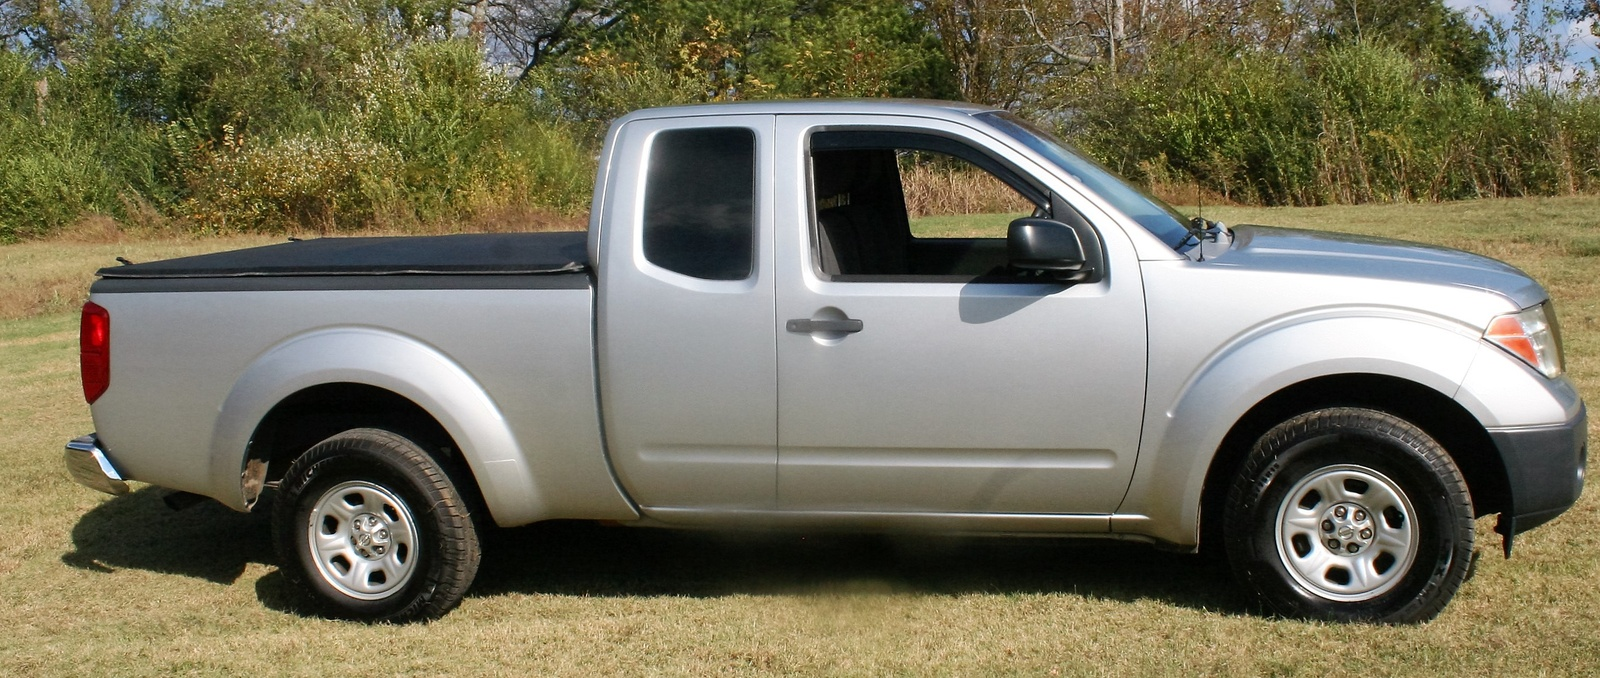 used nissan frontier manual transmission